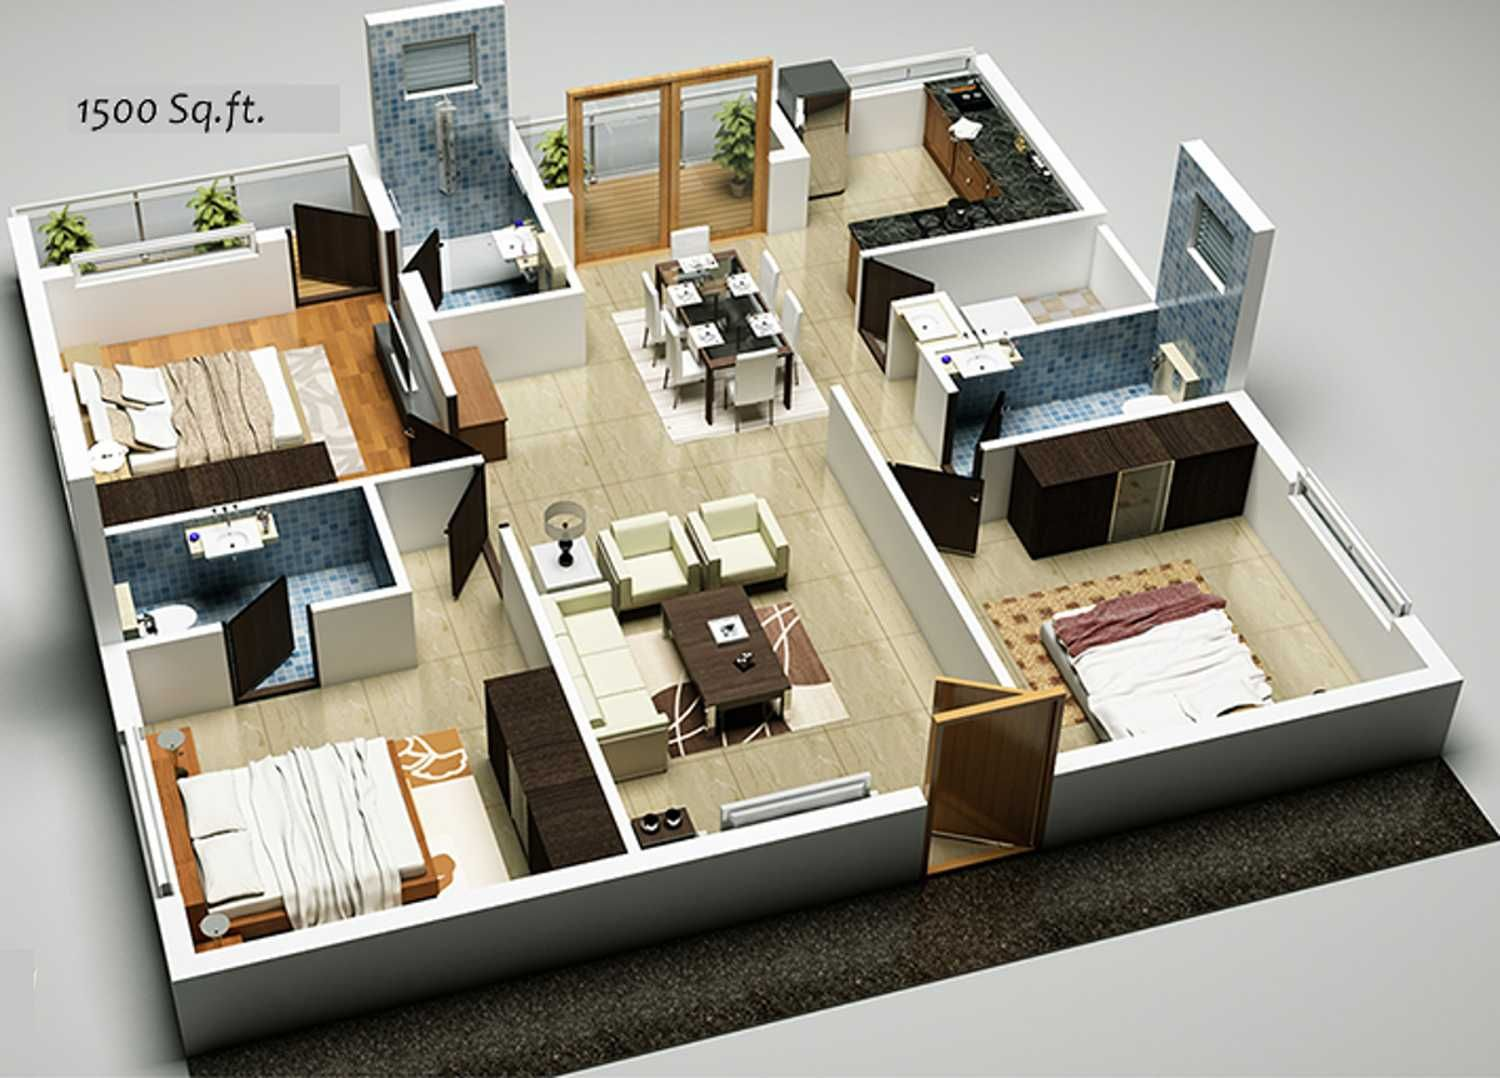 Image Result For Free Plan House 3 Bed Room House Plans Shop House Plans 1500 Sq Ft House